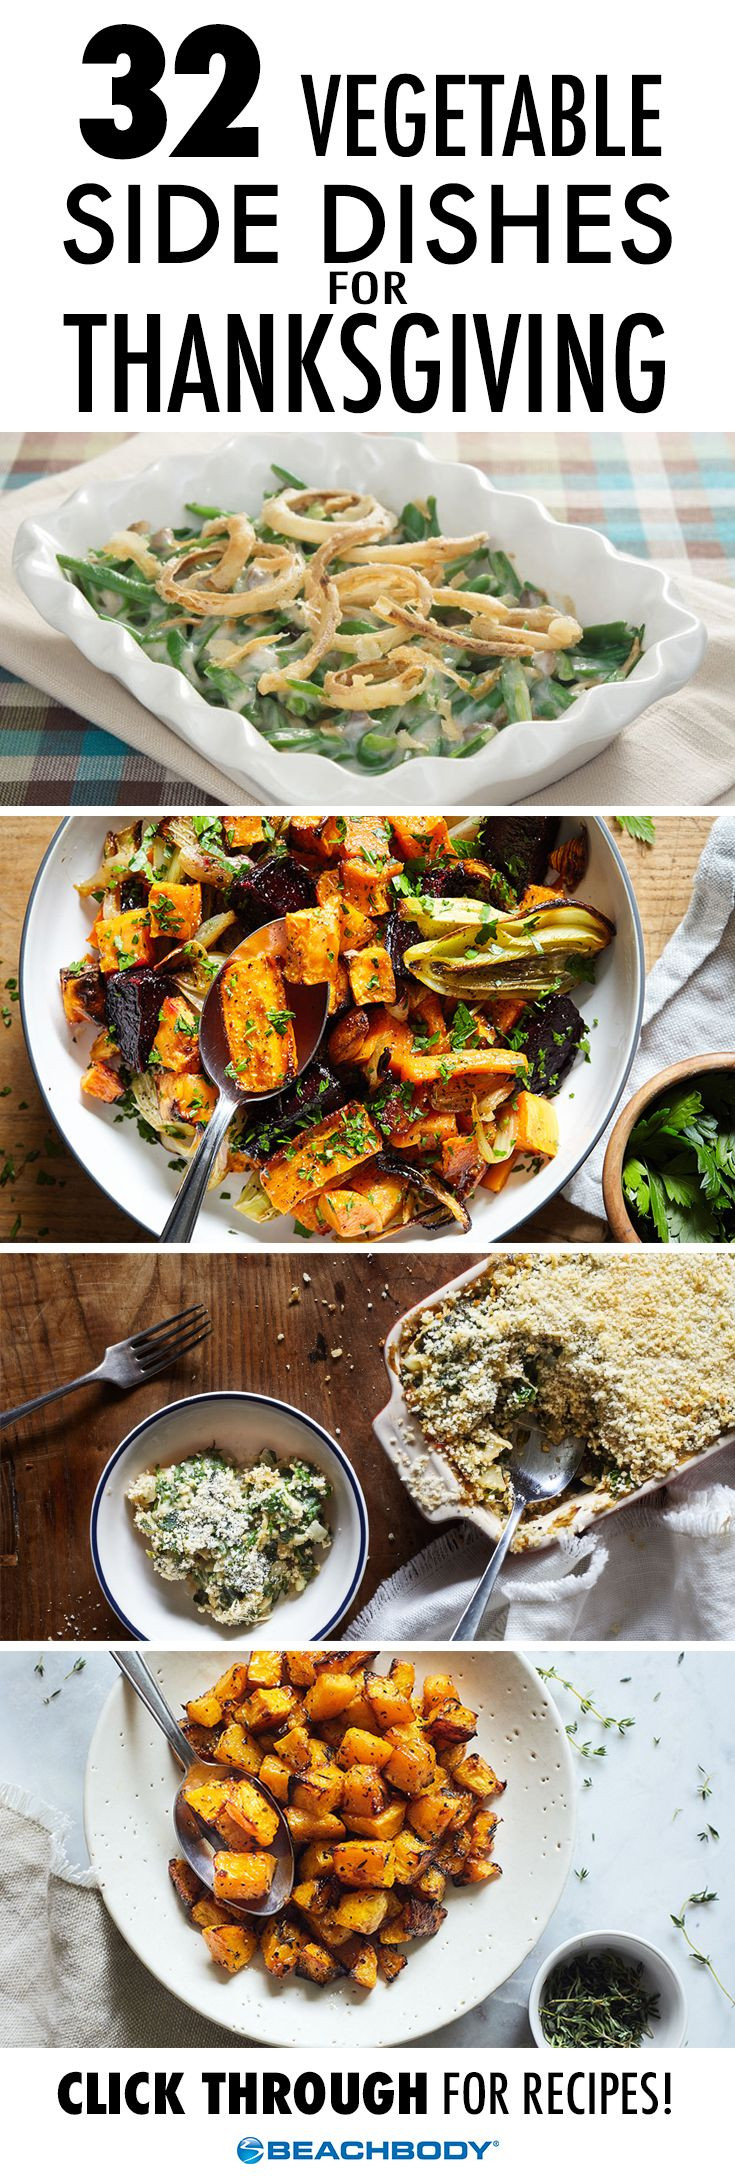 Veggie Side Dishes For Thanksgiving  837 best images about Healthy Recipes on Pinterest